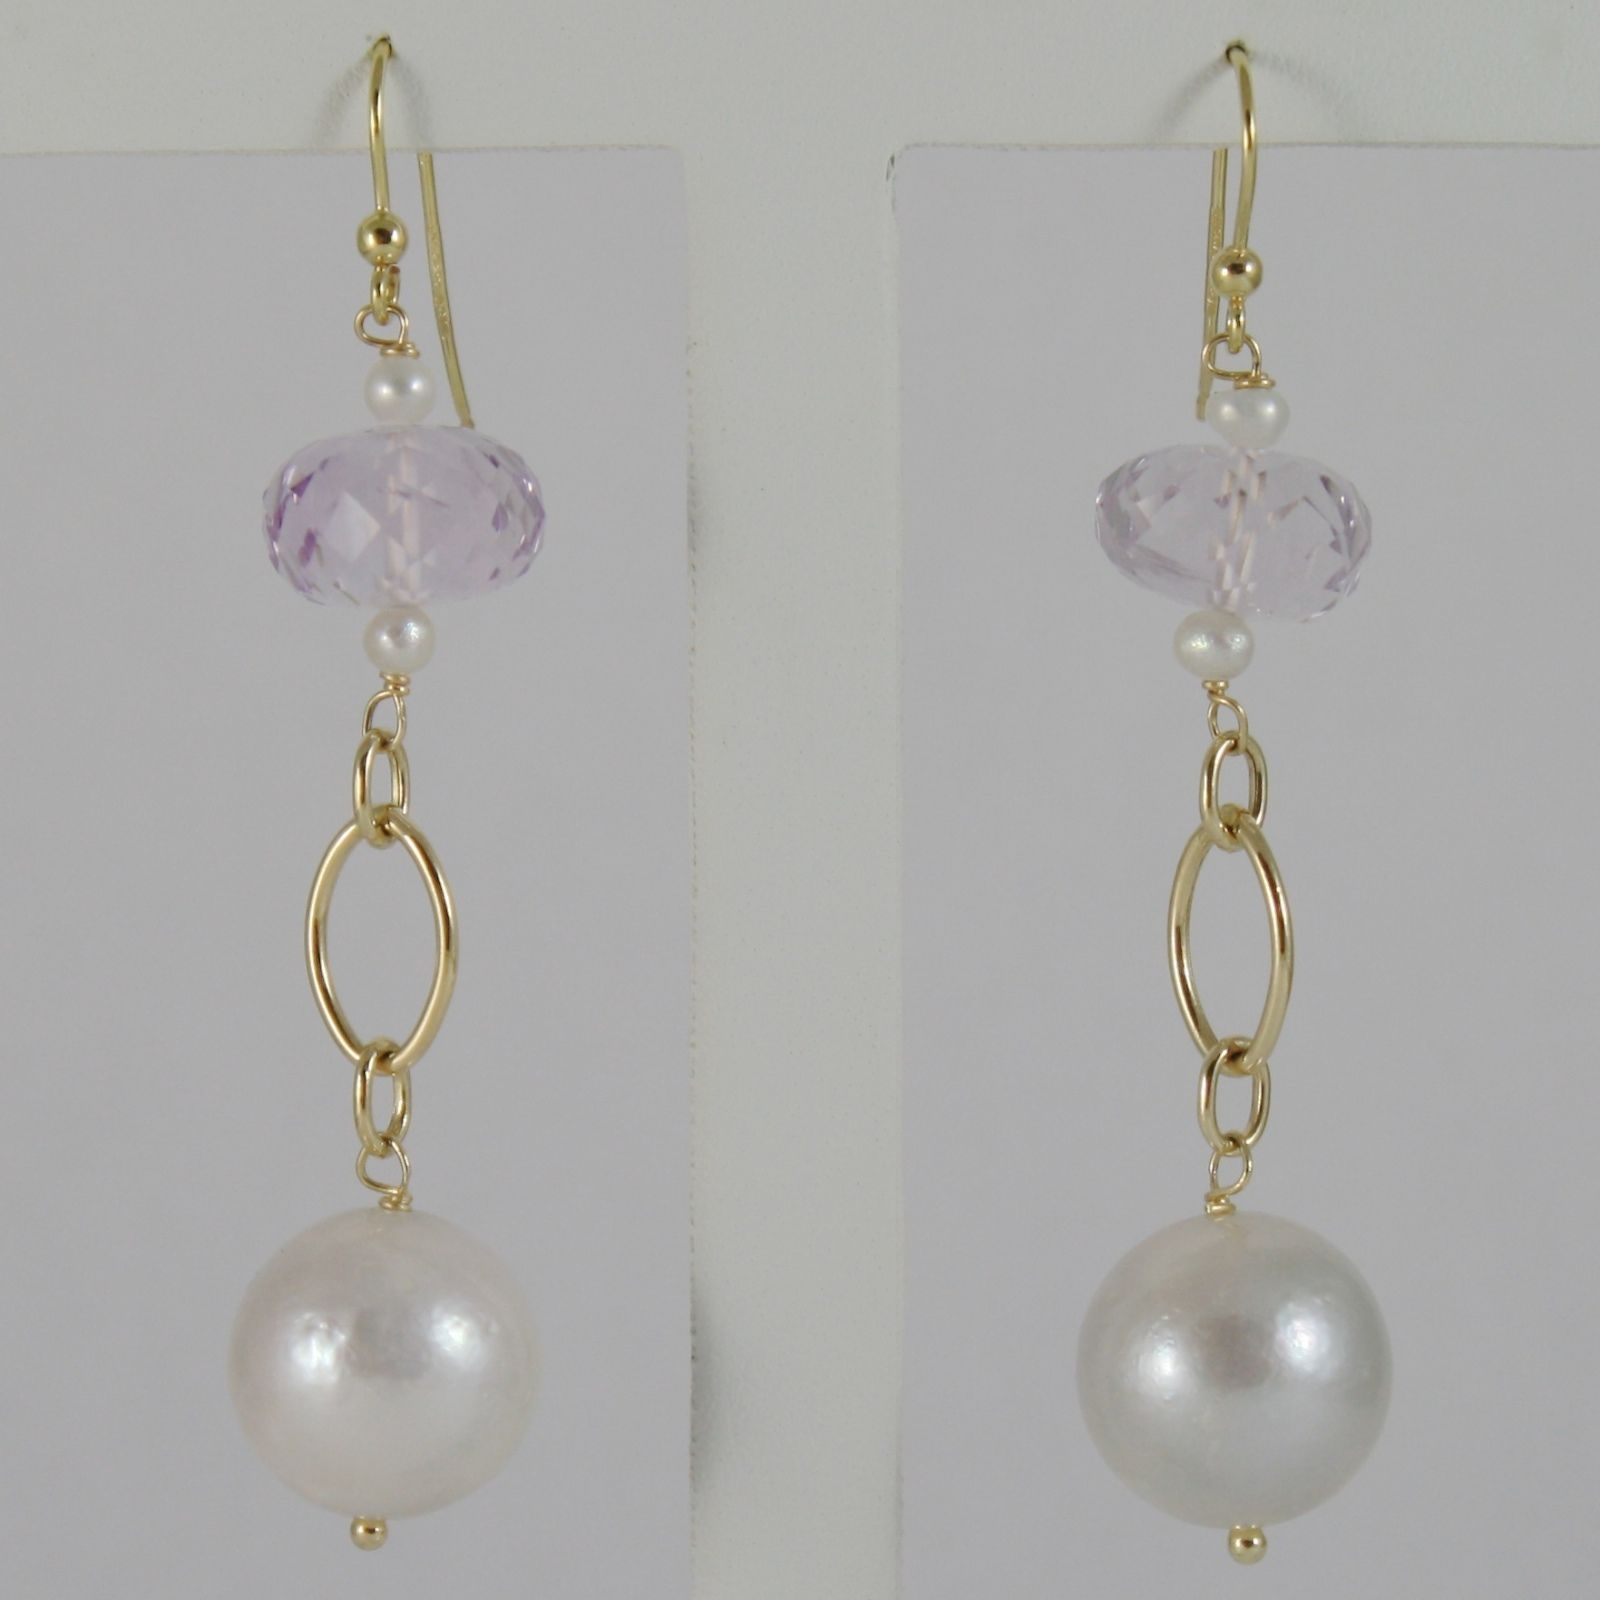 18K YELLOW GOLD PENDANT EARRINGS WITH BIG 12 MM WHITE FW PEARLS AND AMETHYST